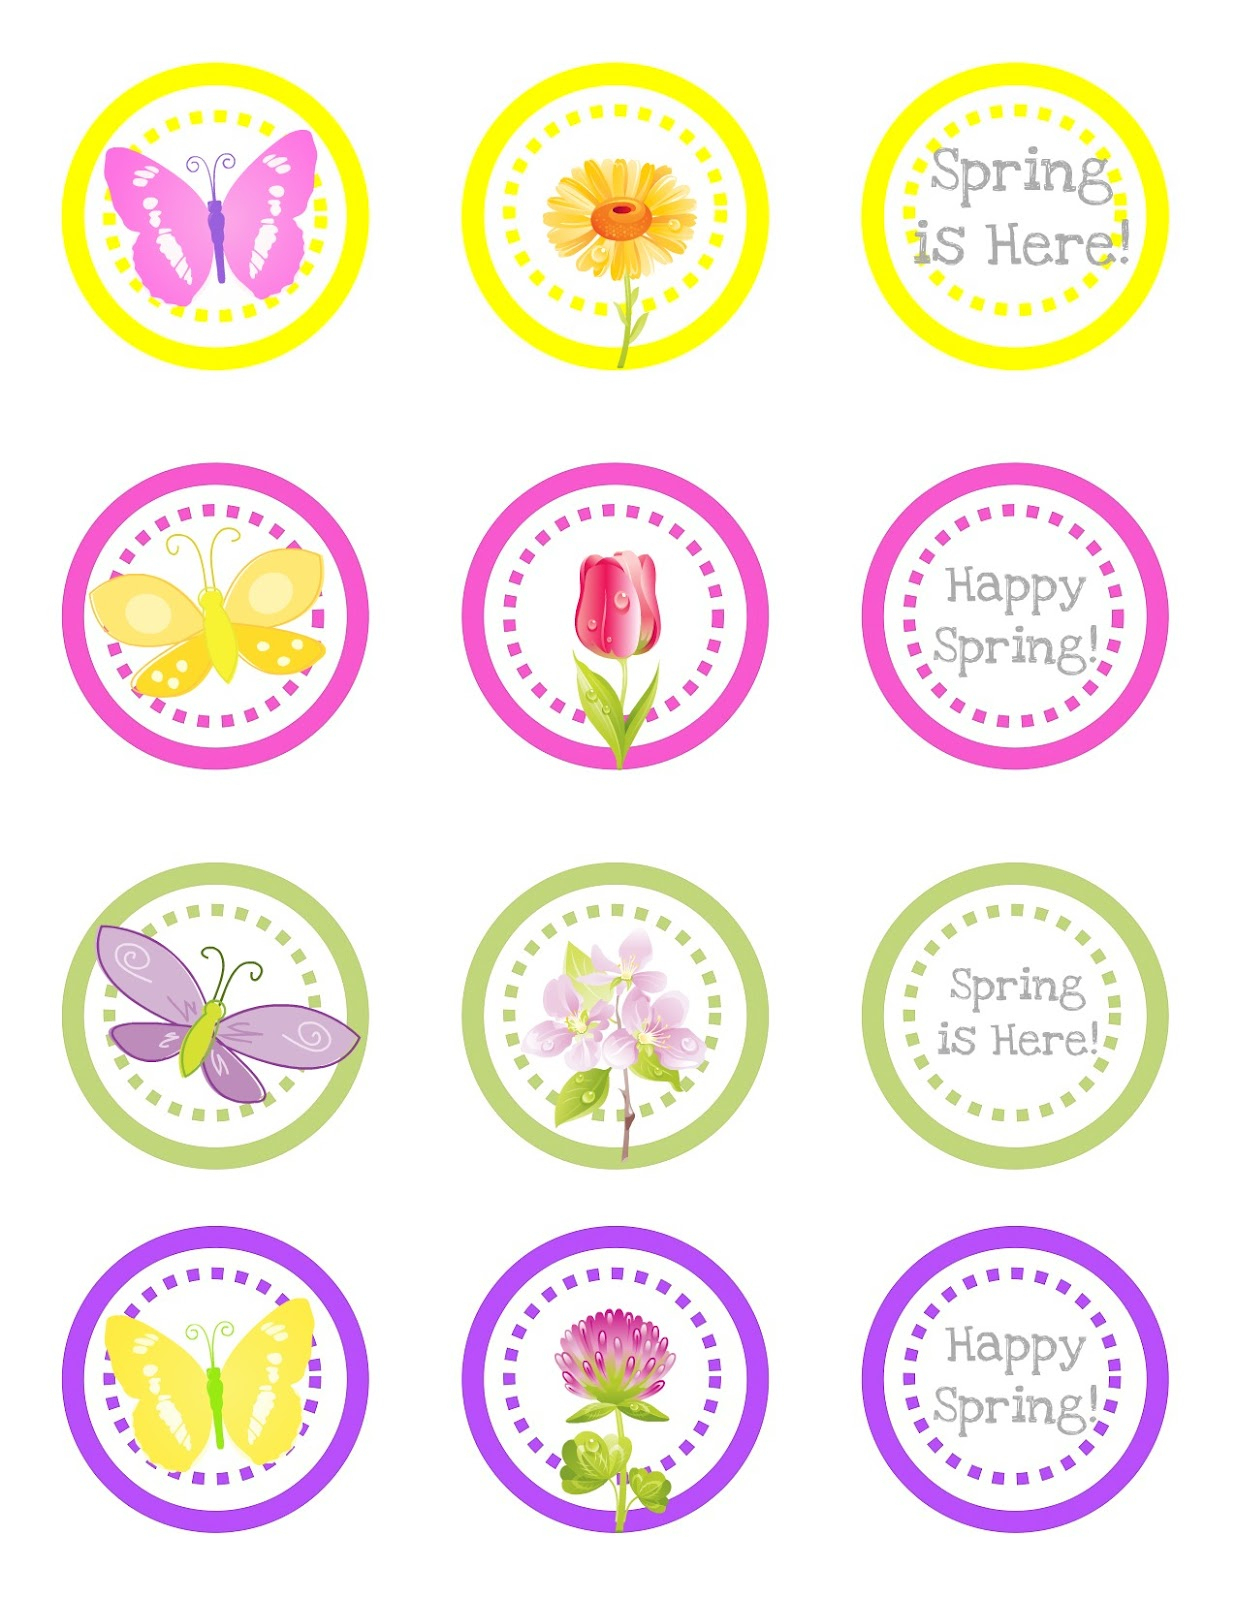 Free Printable} April Showers Bring May Flowers Printable - Creative - Free Printable Flowers